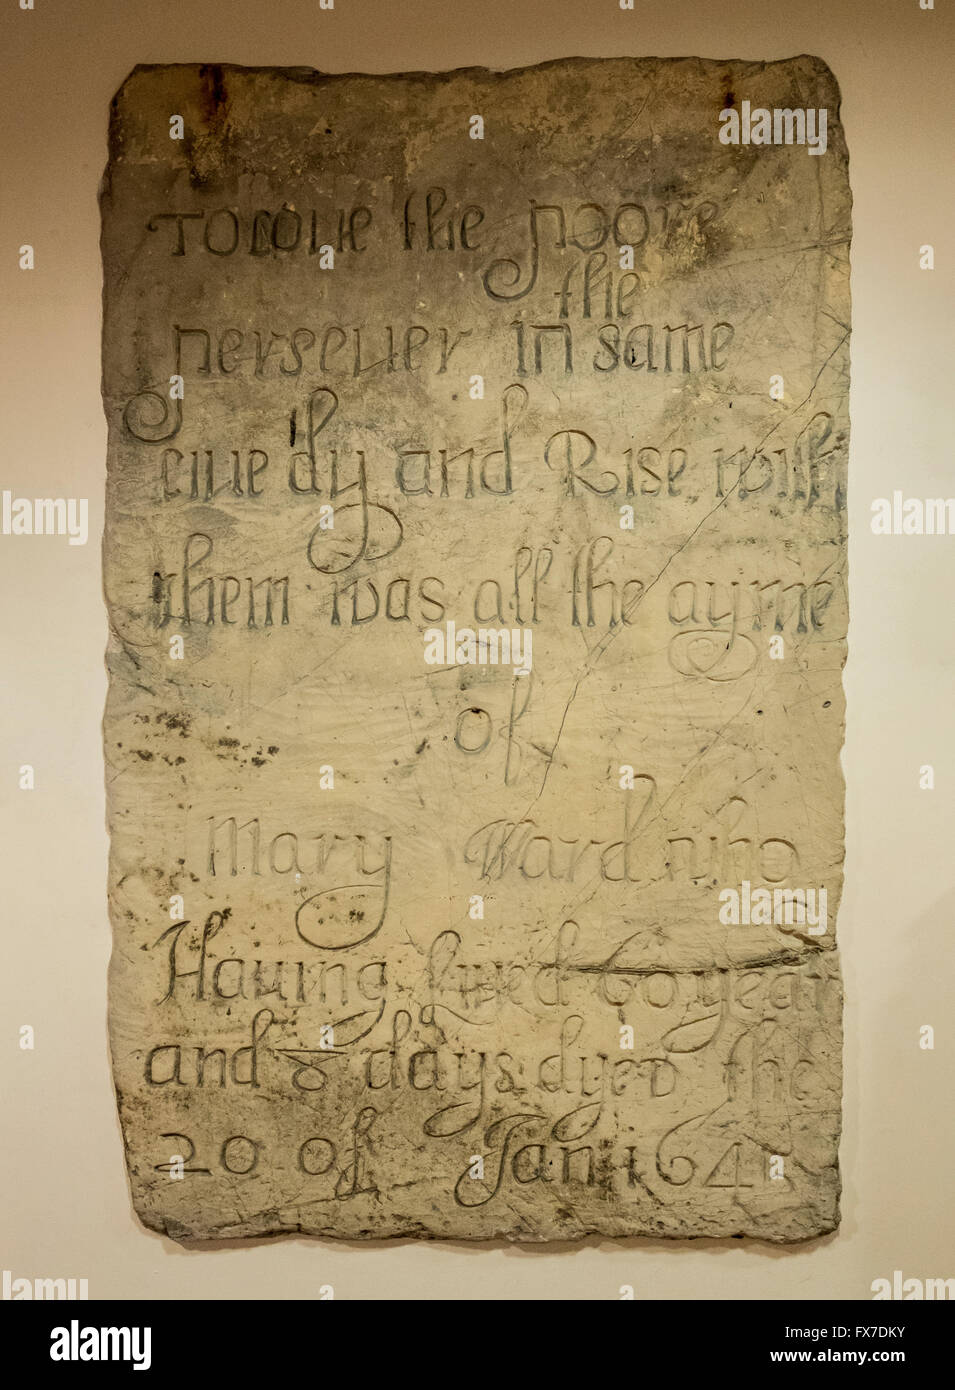 Tombstone of Mary Ward (1585 - 1645) mounted in the interior wall of St Thomas' Church, Osbaldwick, Nr York, - Stock Image